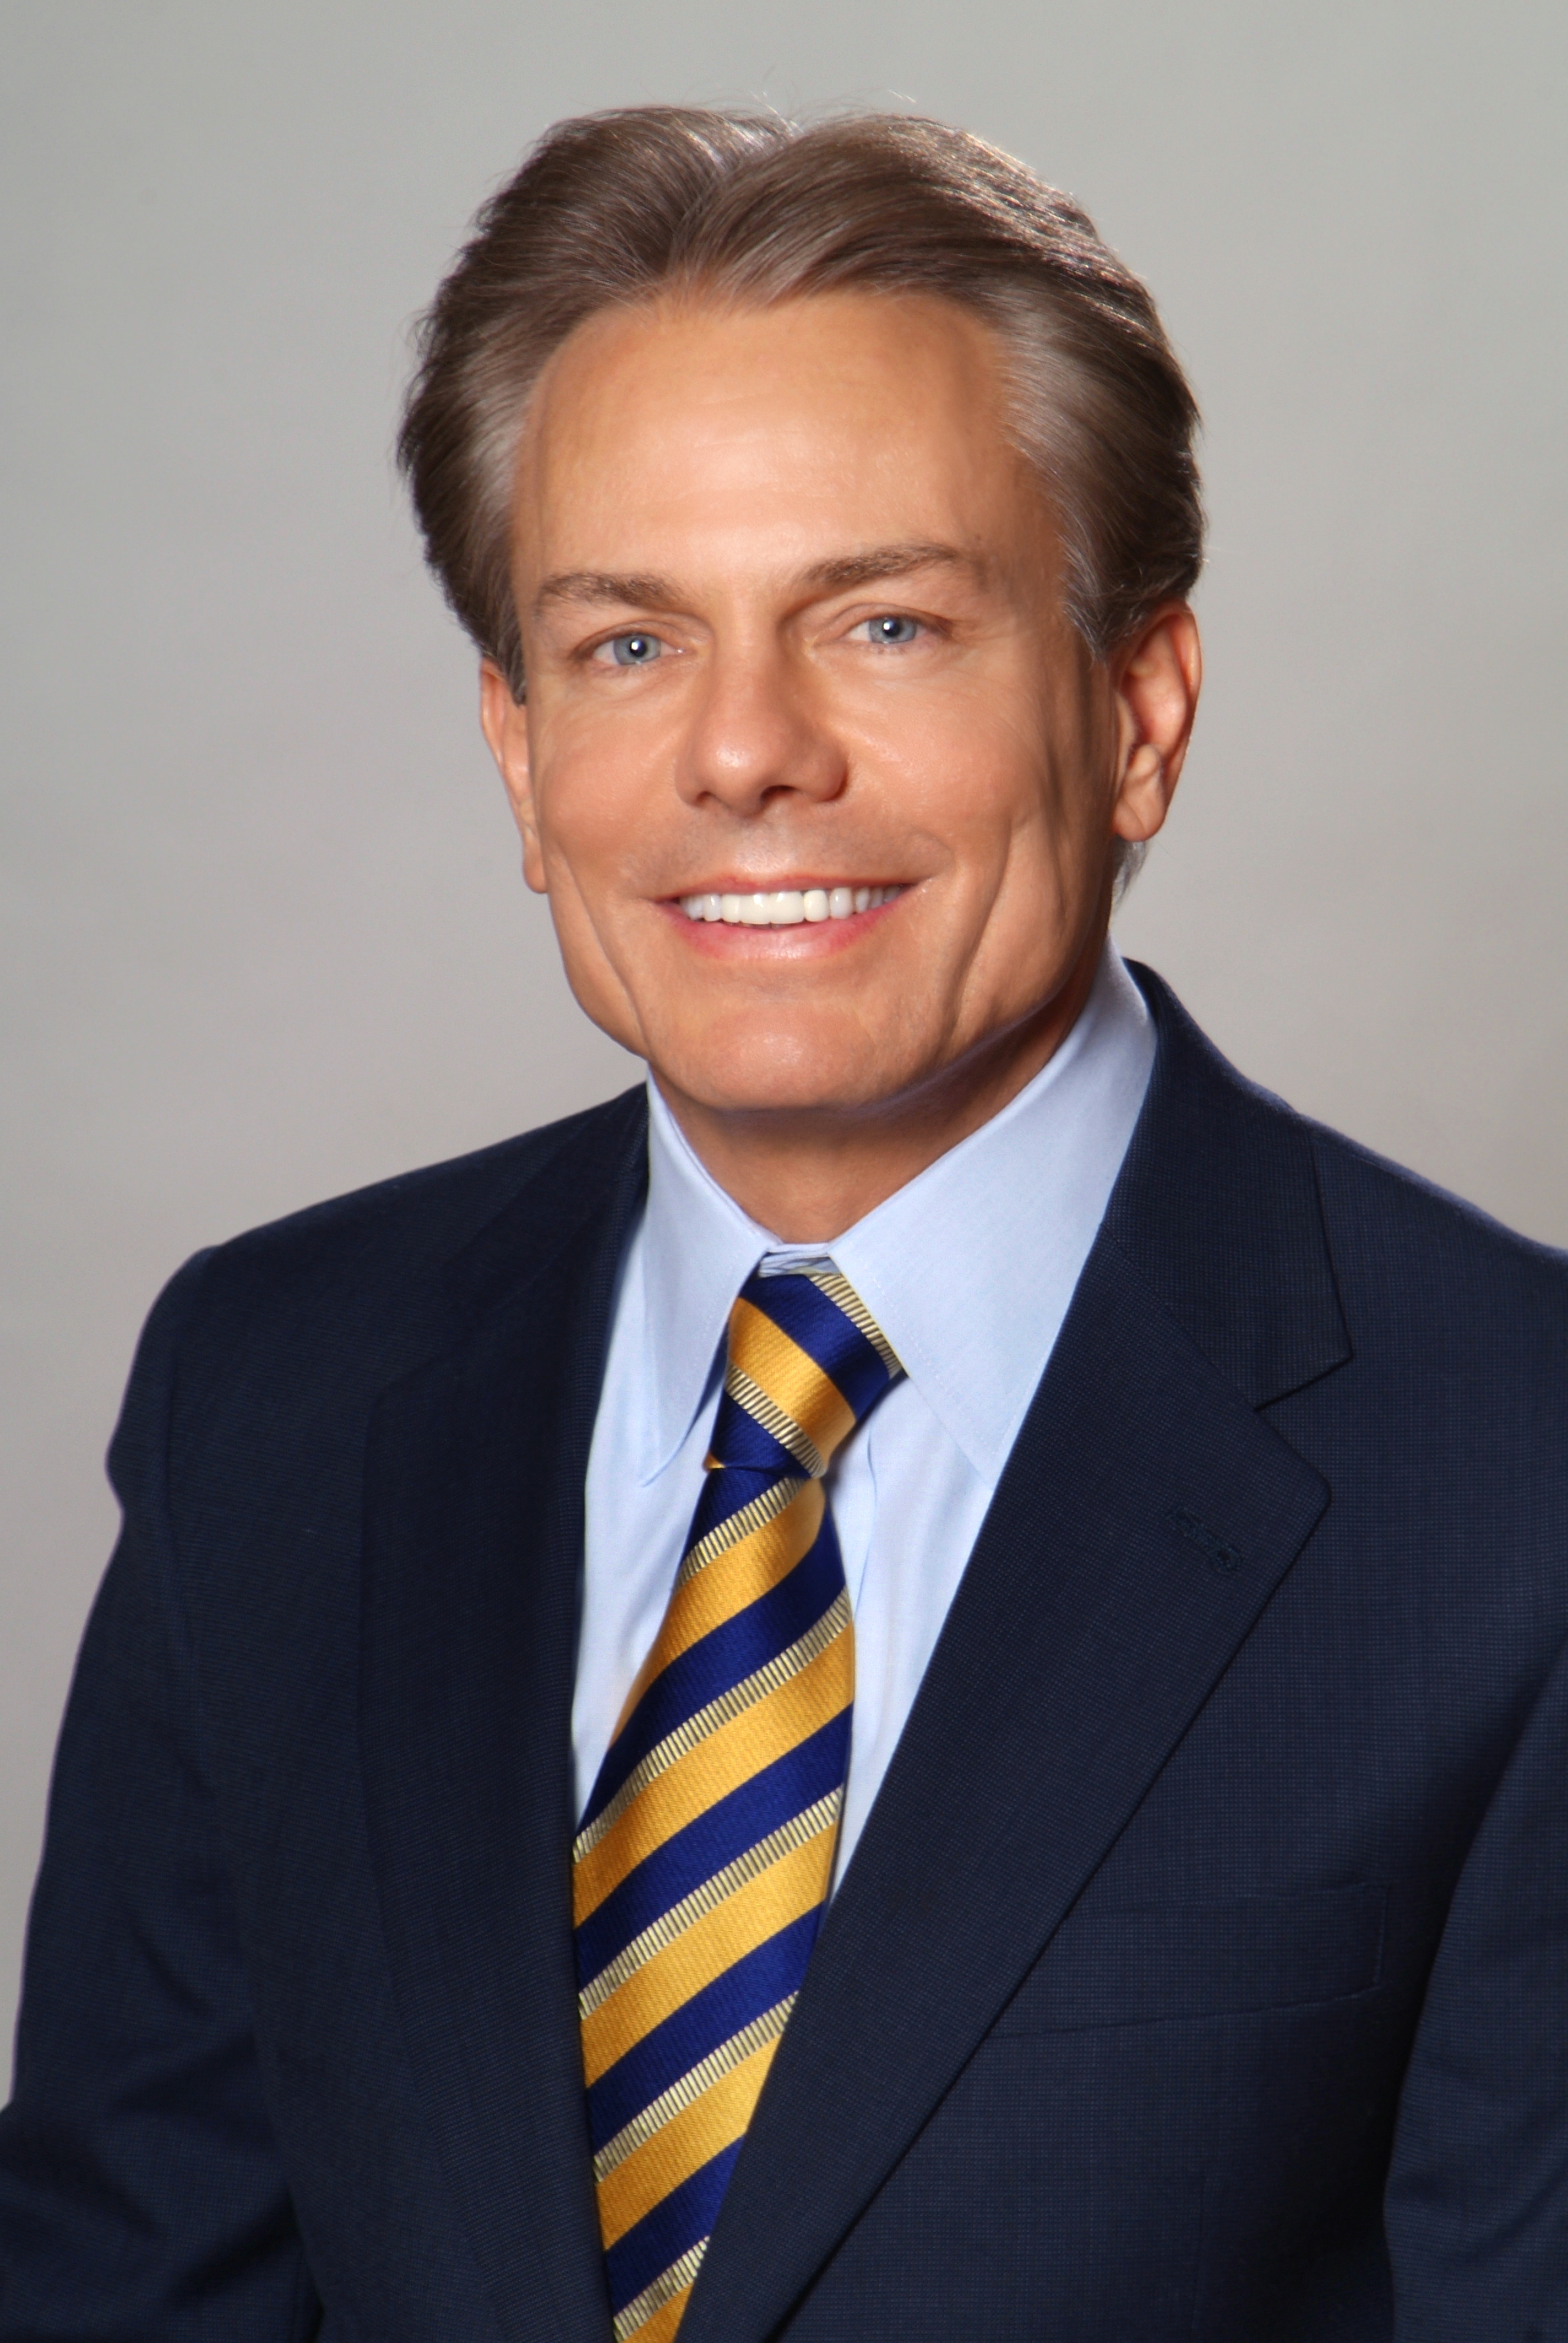 Robert Paiano, Executive Vice President & Chief Risk Officer, The Hartford (Photo: Business Wire)